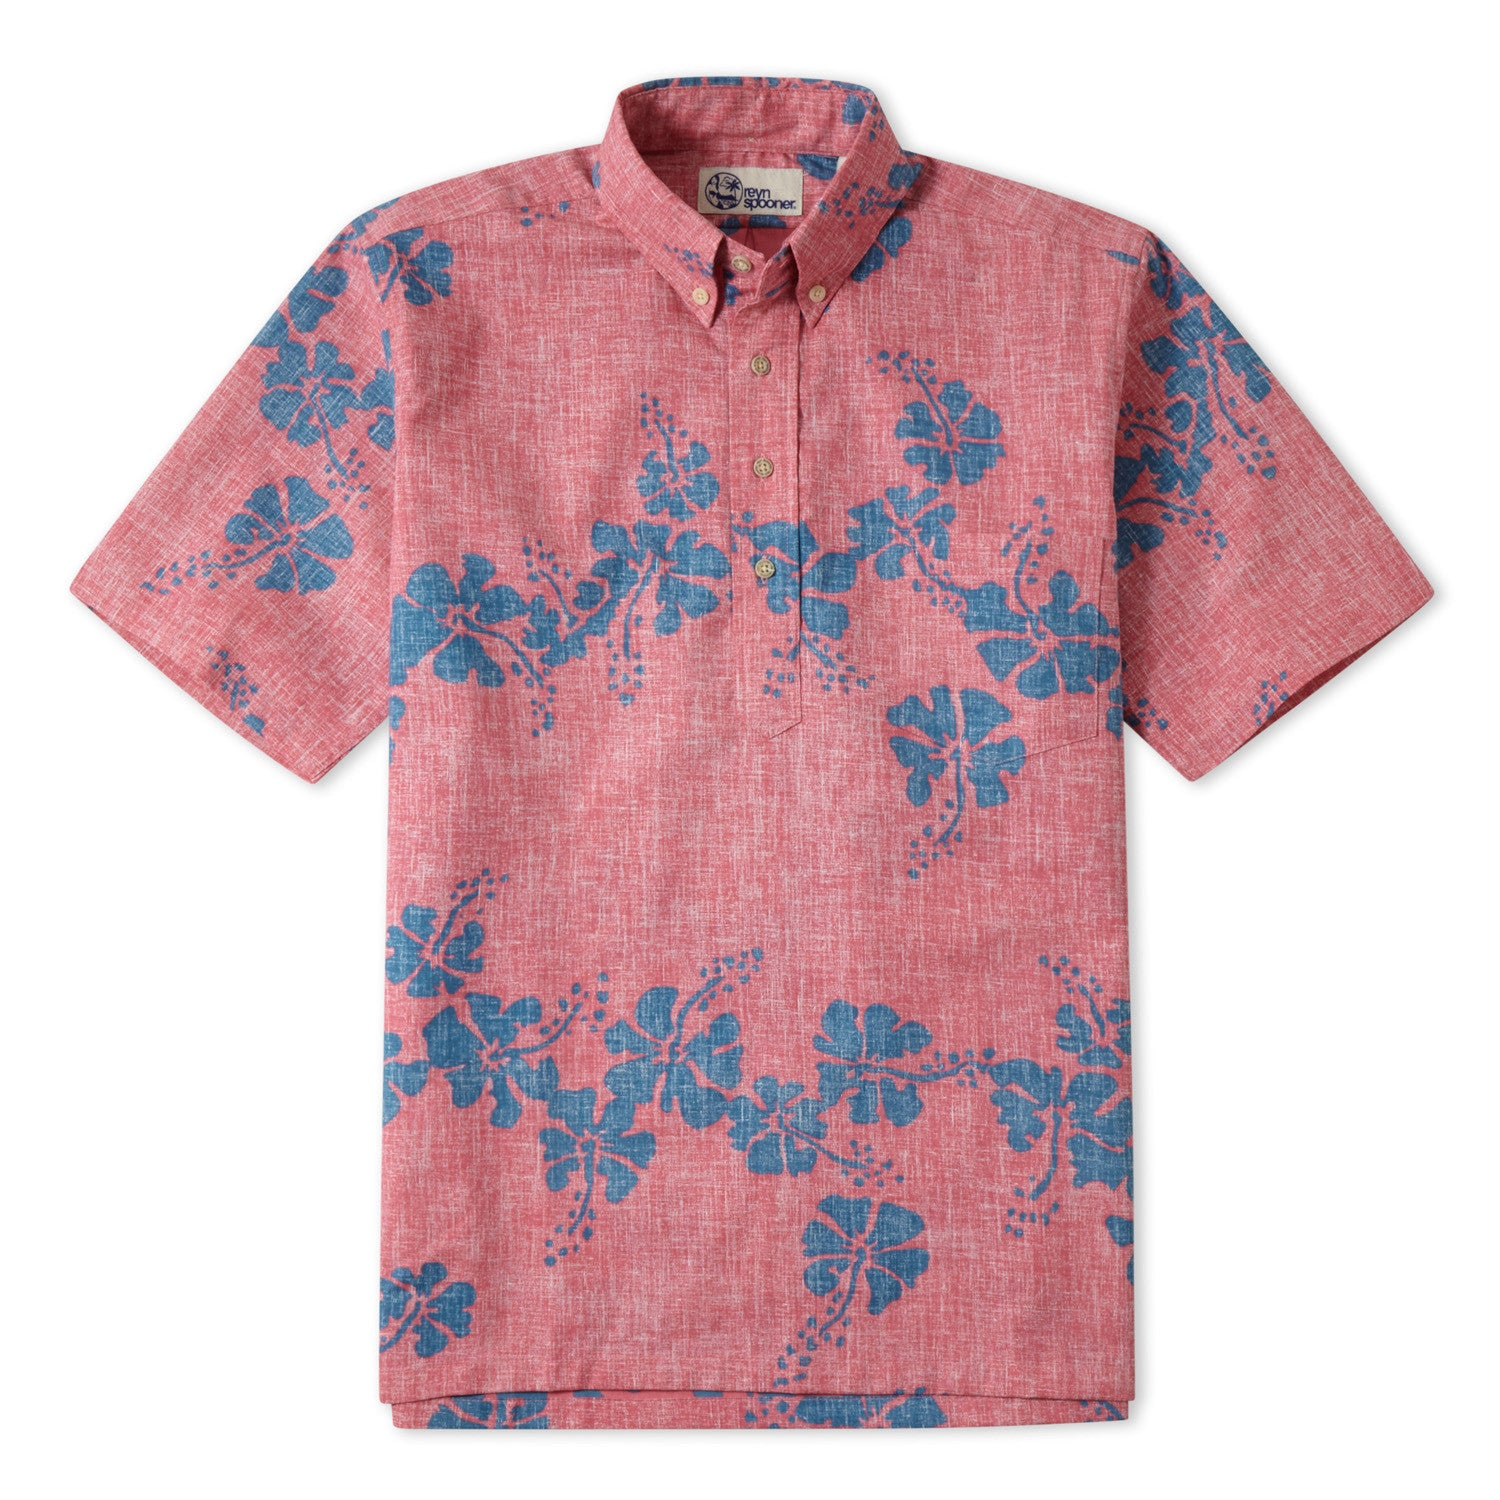 50Th State Flower Classic Fit Short Sleeve Pullover Shirt, Cotton/Polyester, For Men, 3XL, Pink, From Reyn Spooner